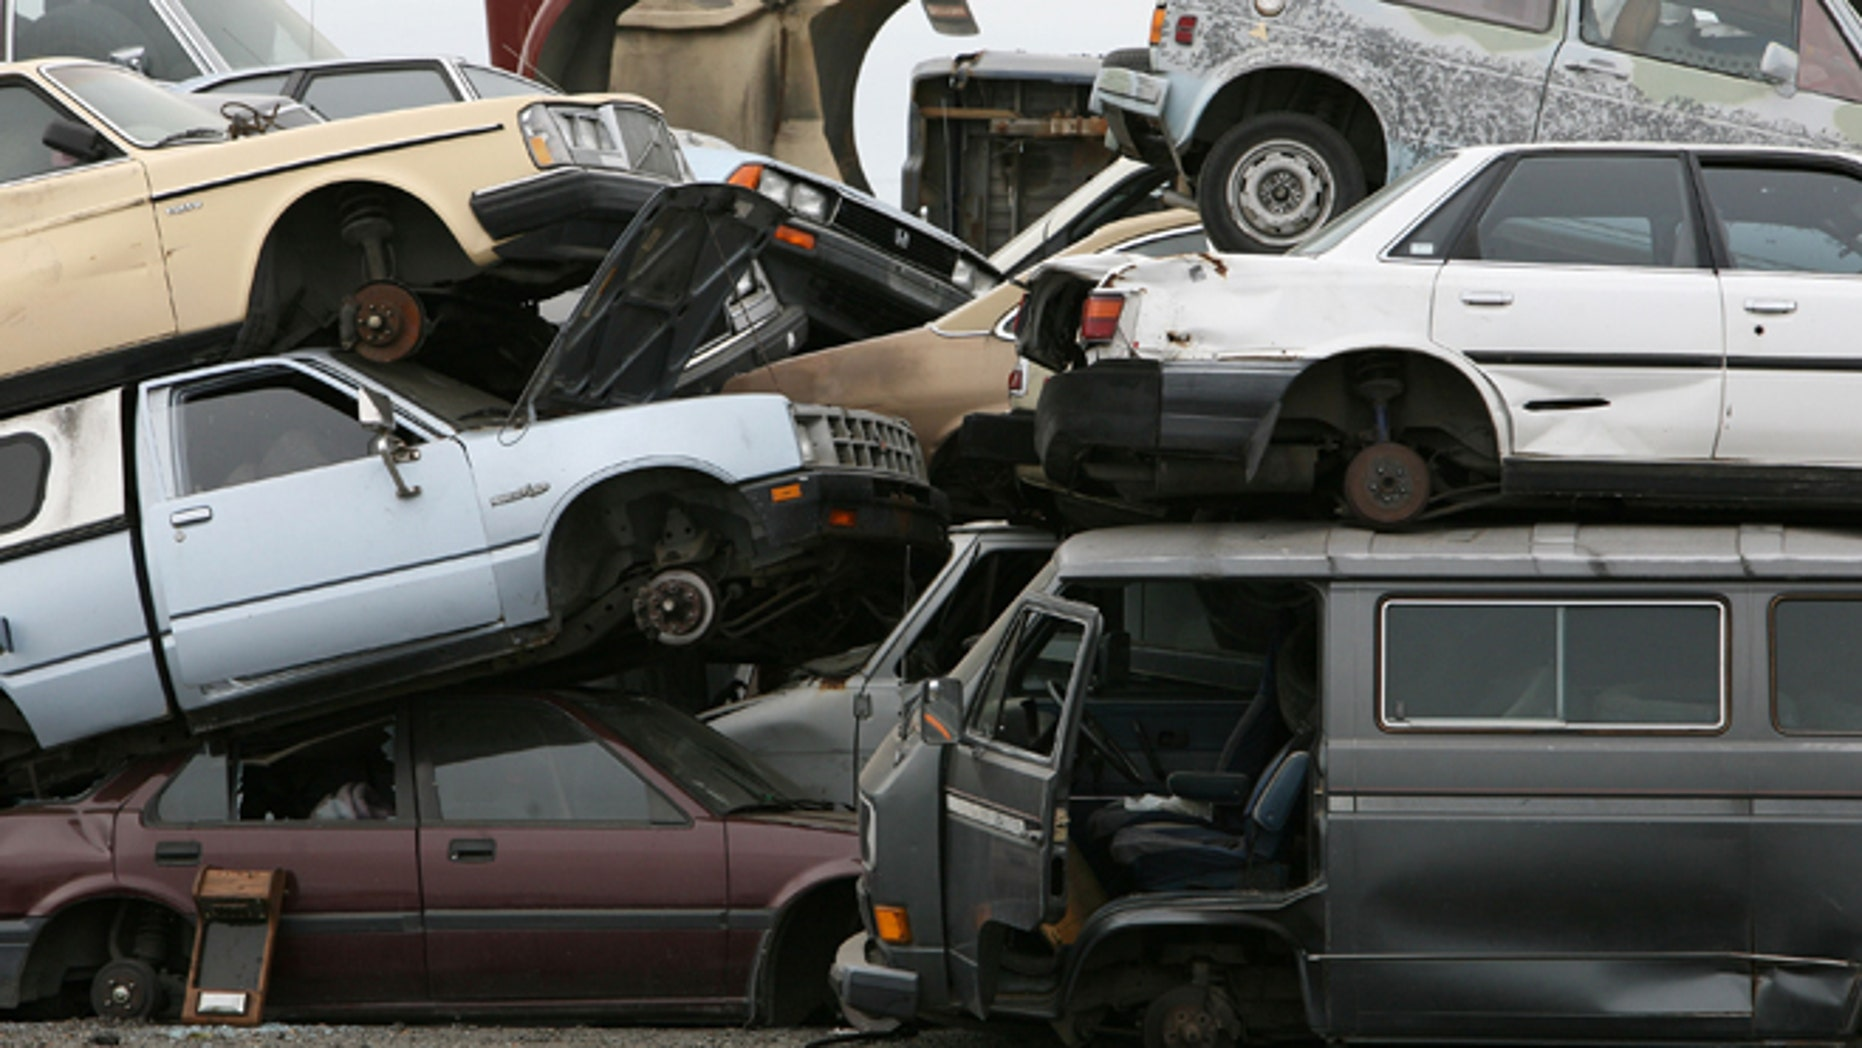 """RICHMOND, CA - JULY 31:  Junk cars are seen stacked at Deal Auto Wrecking July 31, 2009 in Richmond, California. Federal lawmakers are seeking an additional $2 billion to keep the popular """"Cash For Clunkers"""" program going after the initial $1 billion in funding ran out after a week.  (Photo by Justin Sullivan/Getty Images)"""